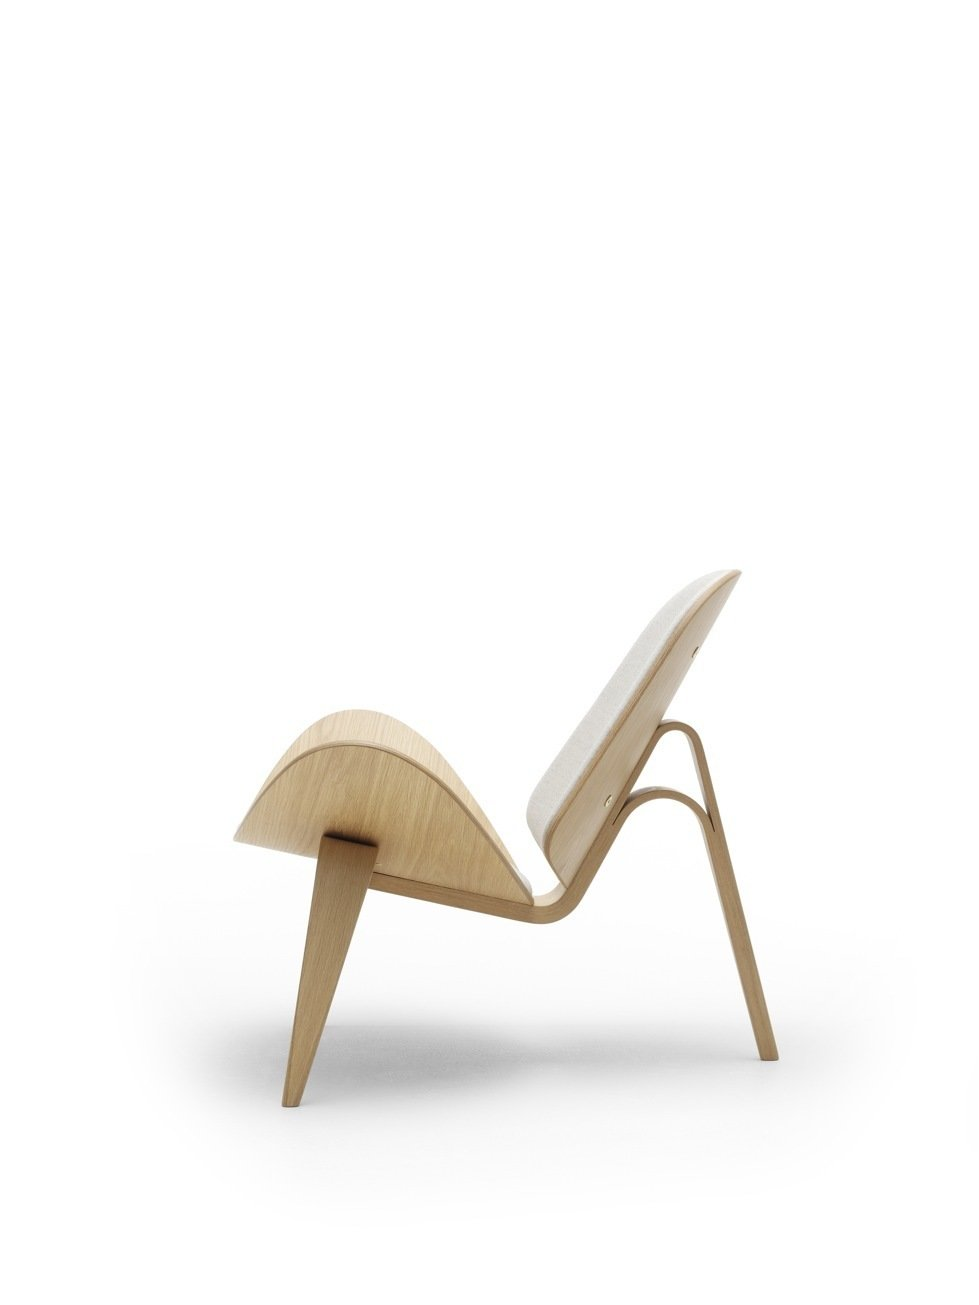 The public was initially reluctant to accept the Three-Legged Shell Chair (1963), an edgier piece of work, from Wegner, which debuted at the 1963  Furniture Guild Exhibition in Copenhagen, but has become more attracted to the wavy, airy design since the chair was reintroduced in 1998. Photo courtesy of Carl Hansen & Son.